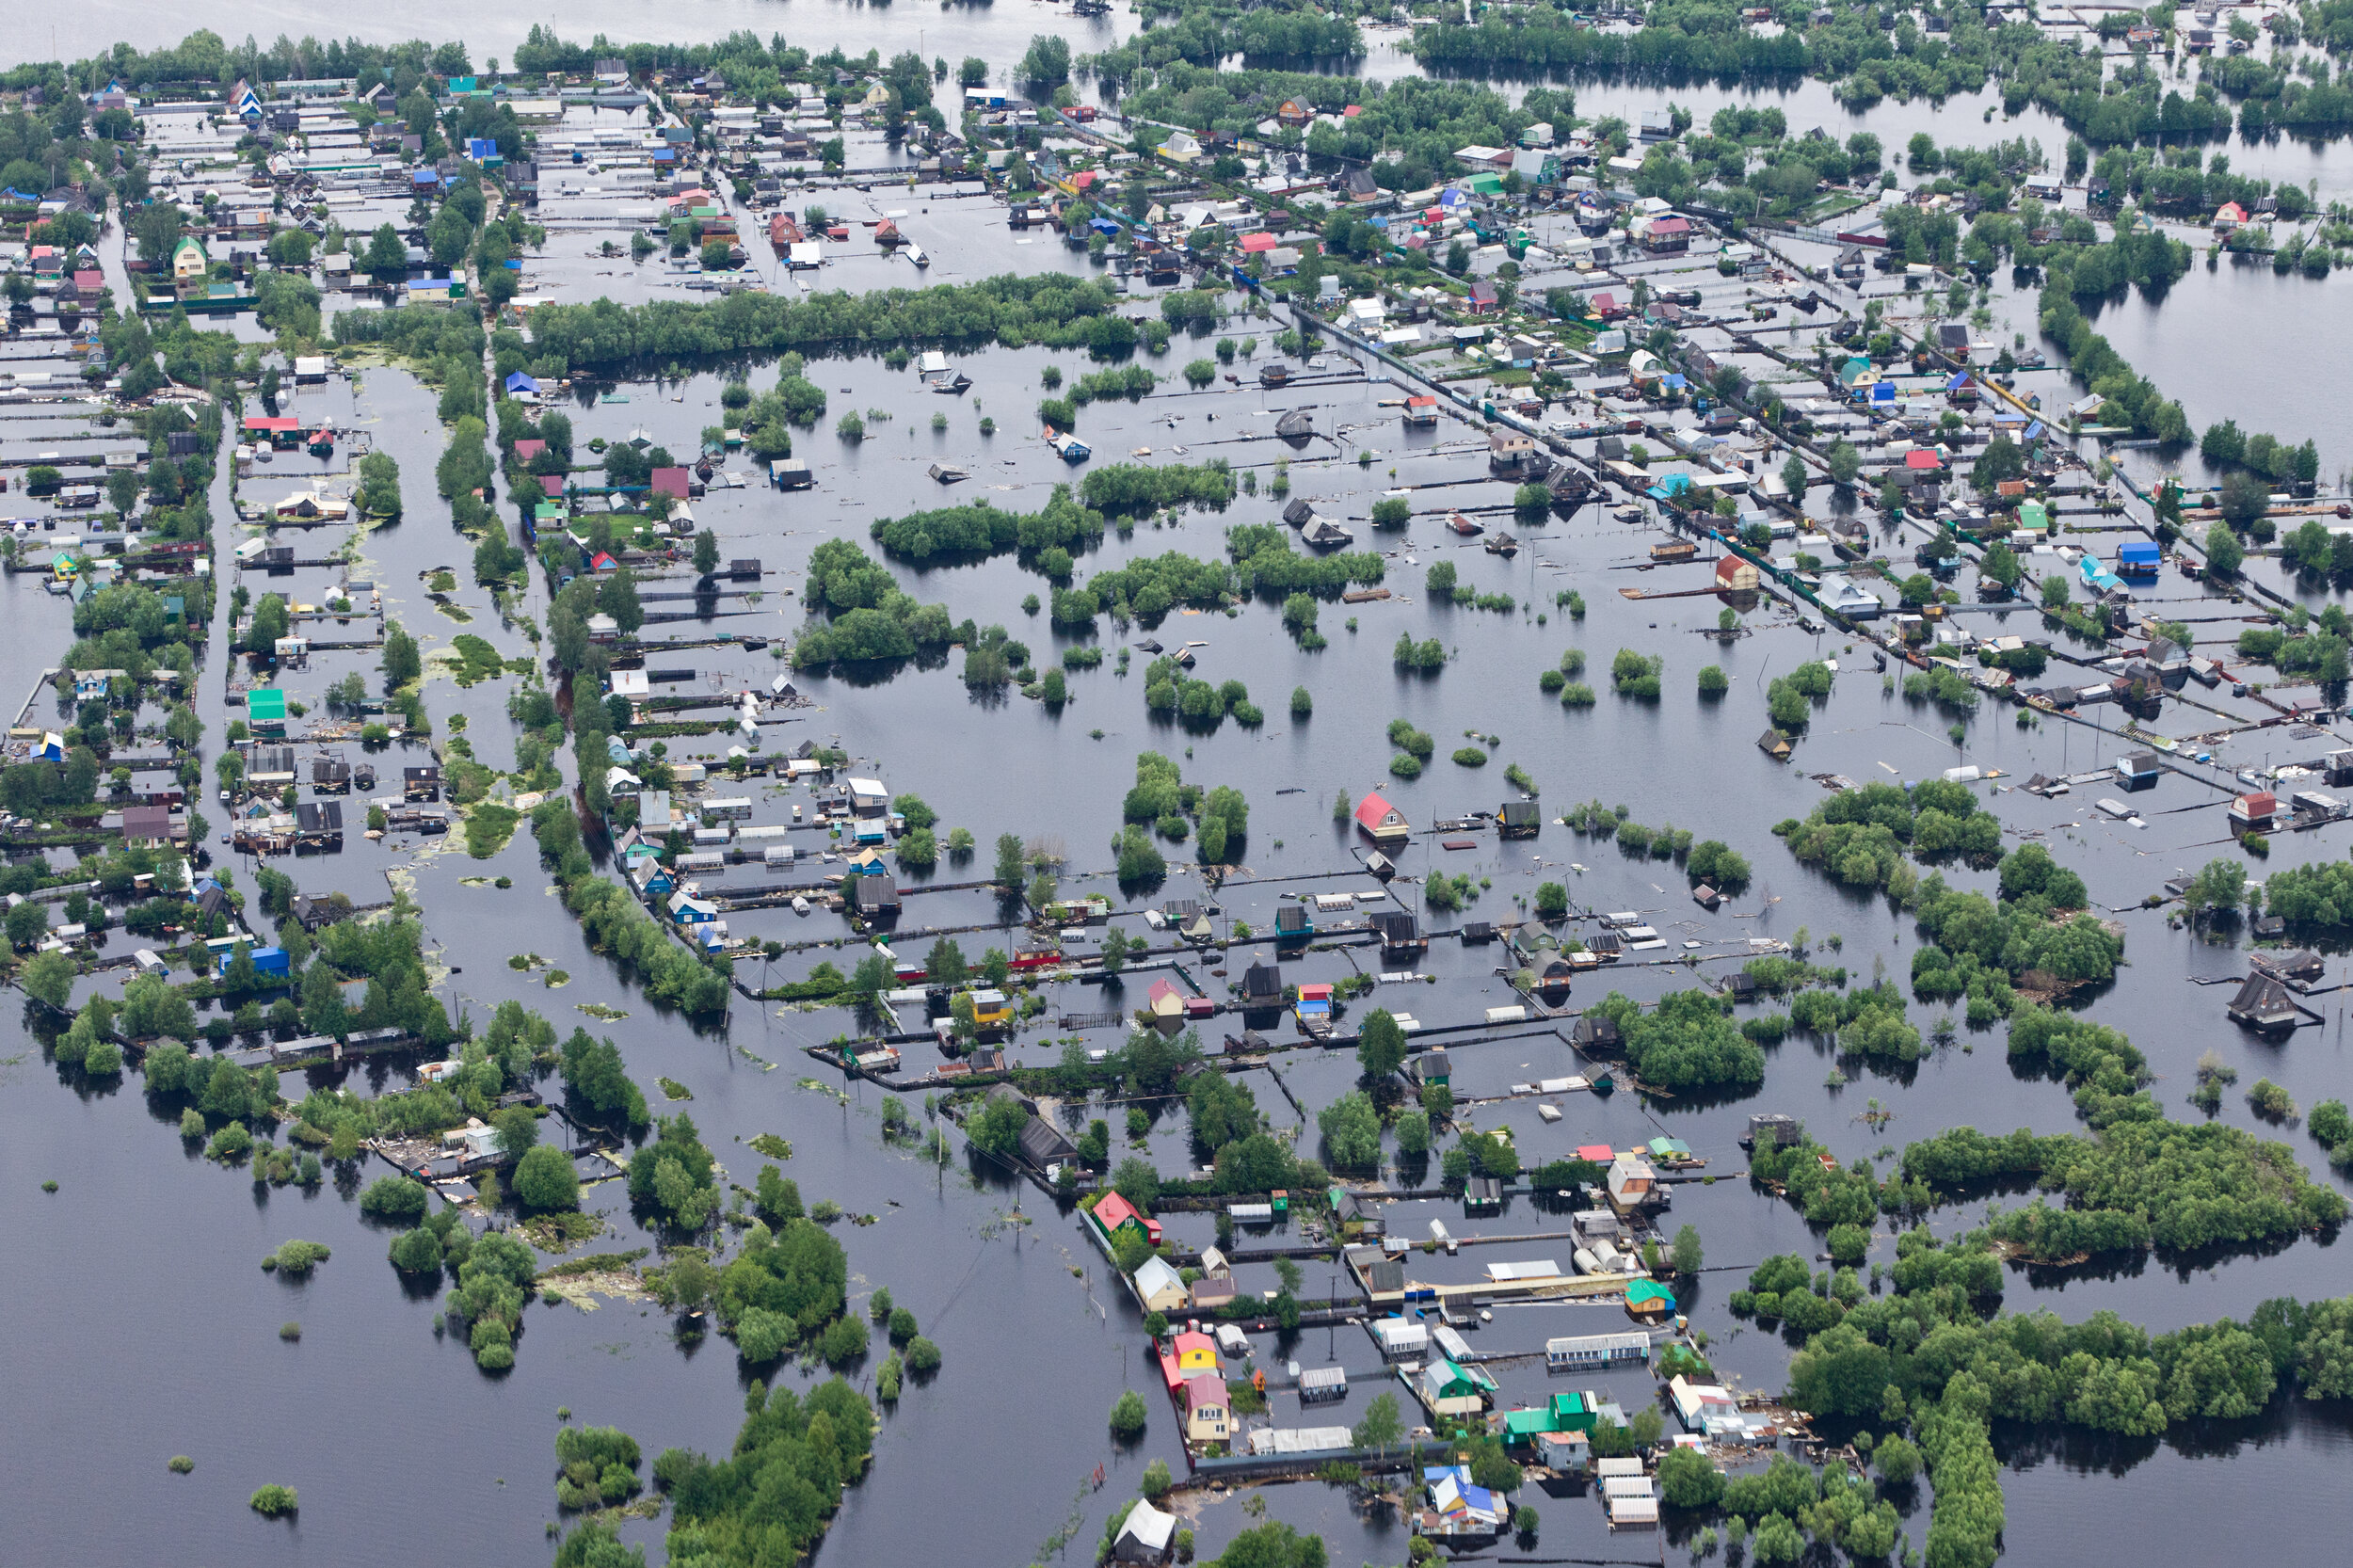 scenario planning - Identification of properties of future climate and weather extremes, non-physical risks and opportunities, as well as development of scenarios and resilience indicators.